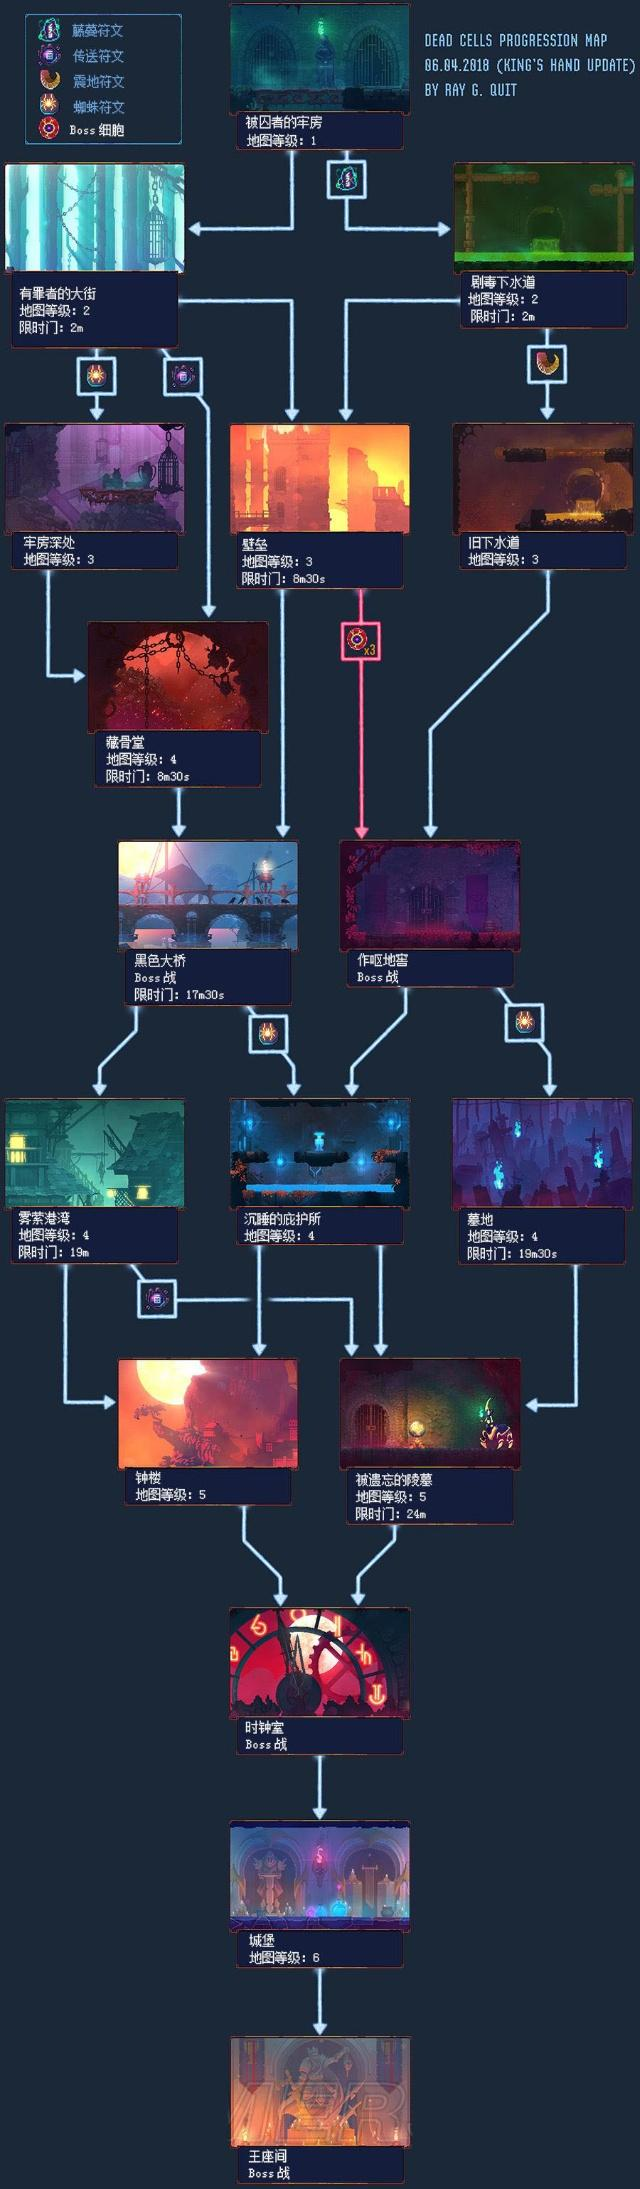 Is there any simple guide for new players of Dead Cells?